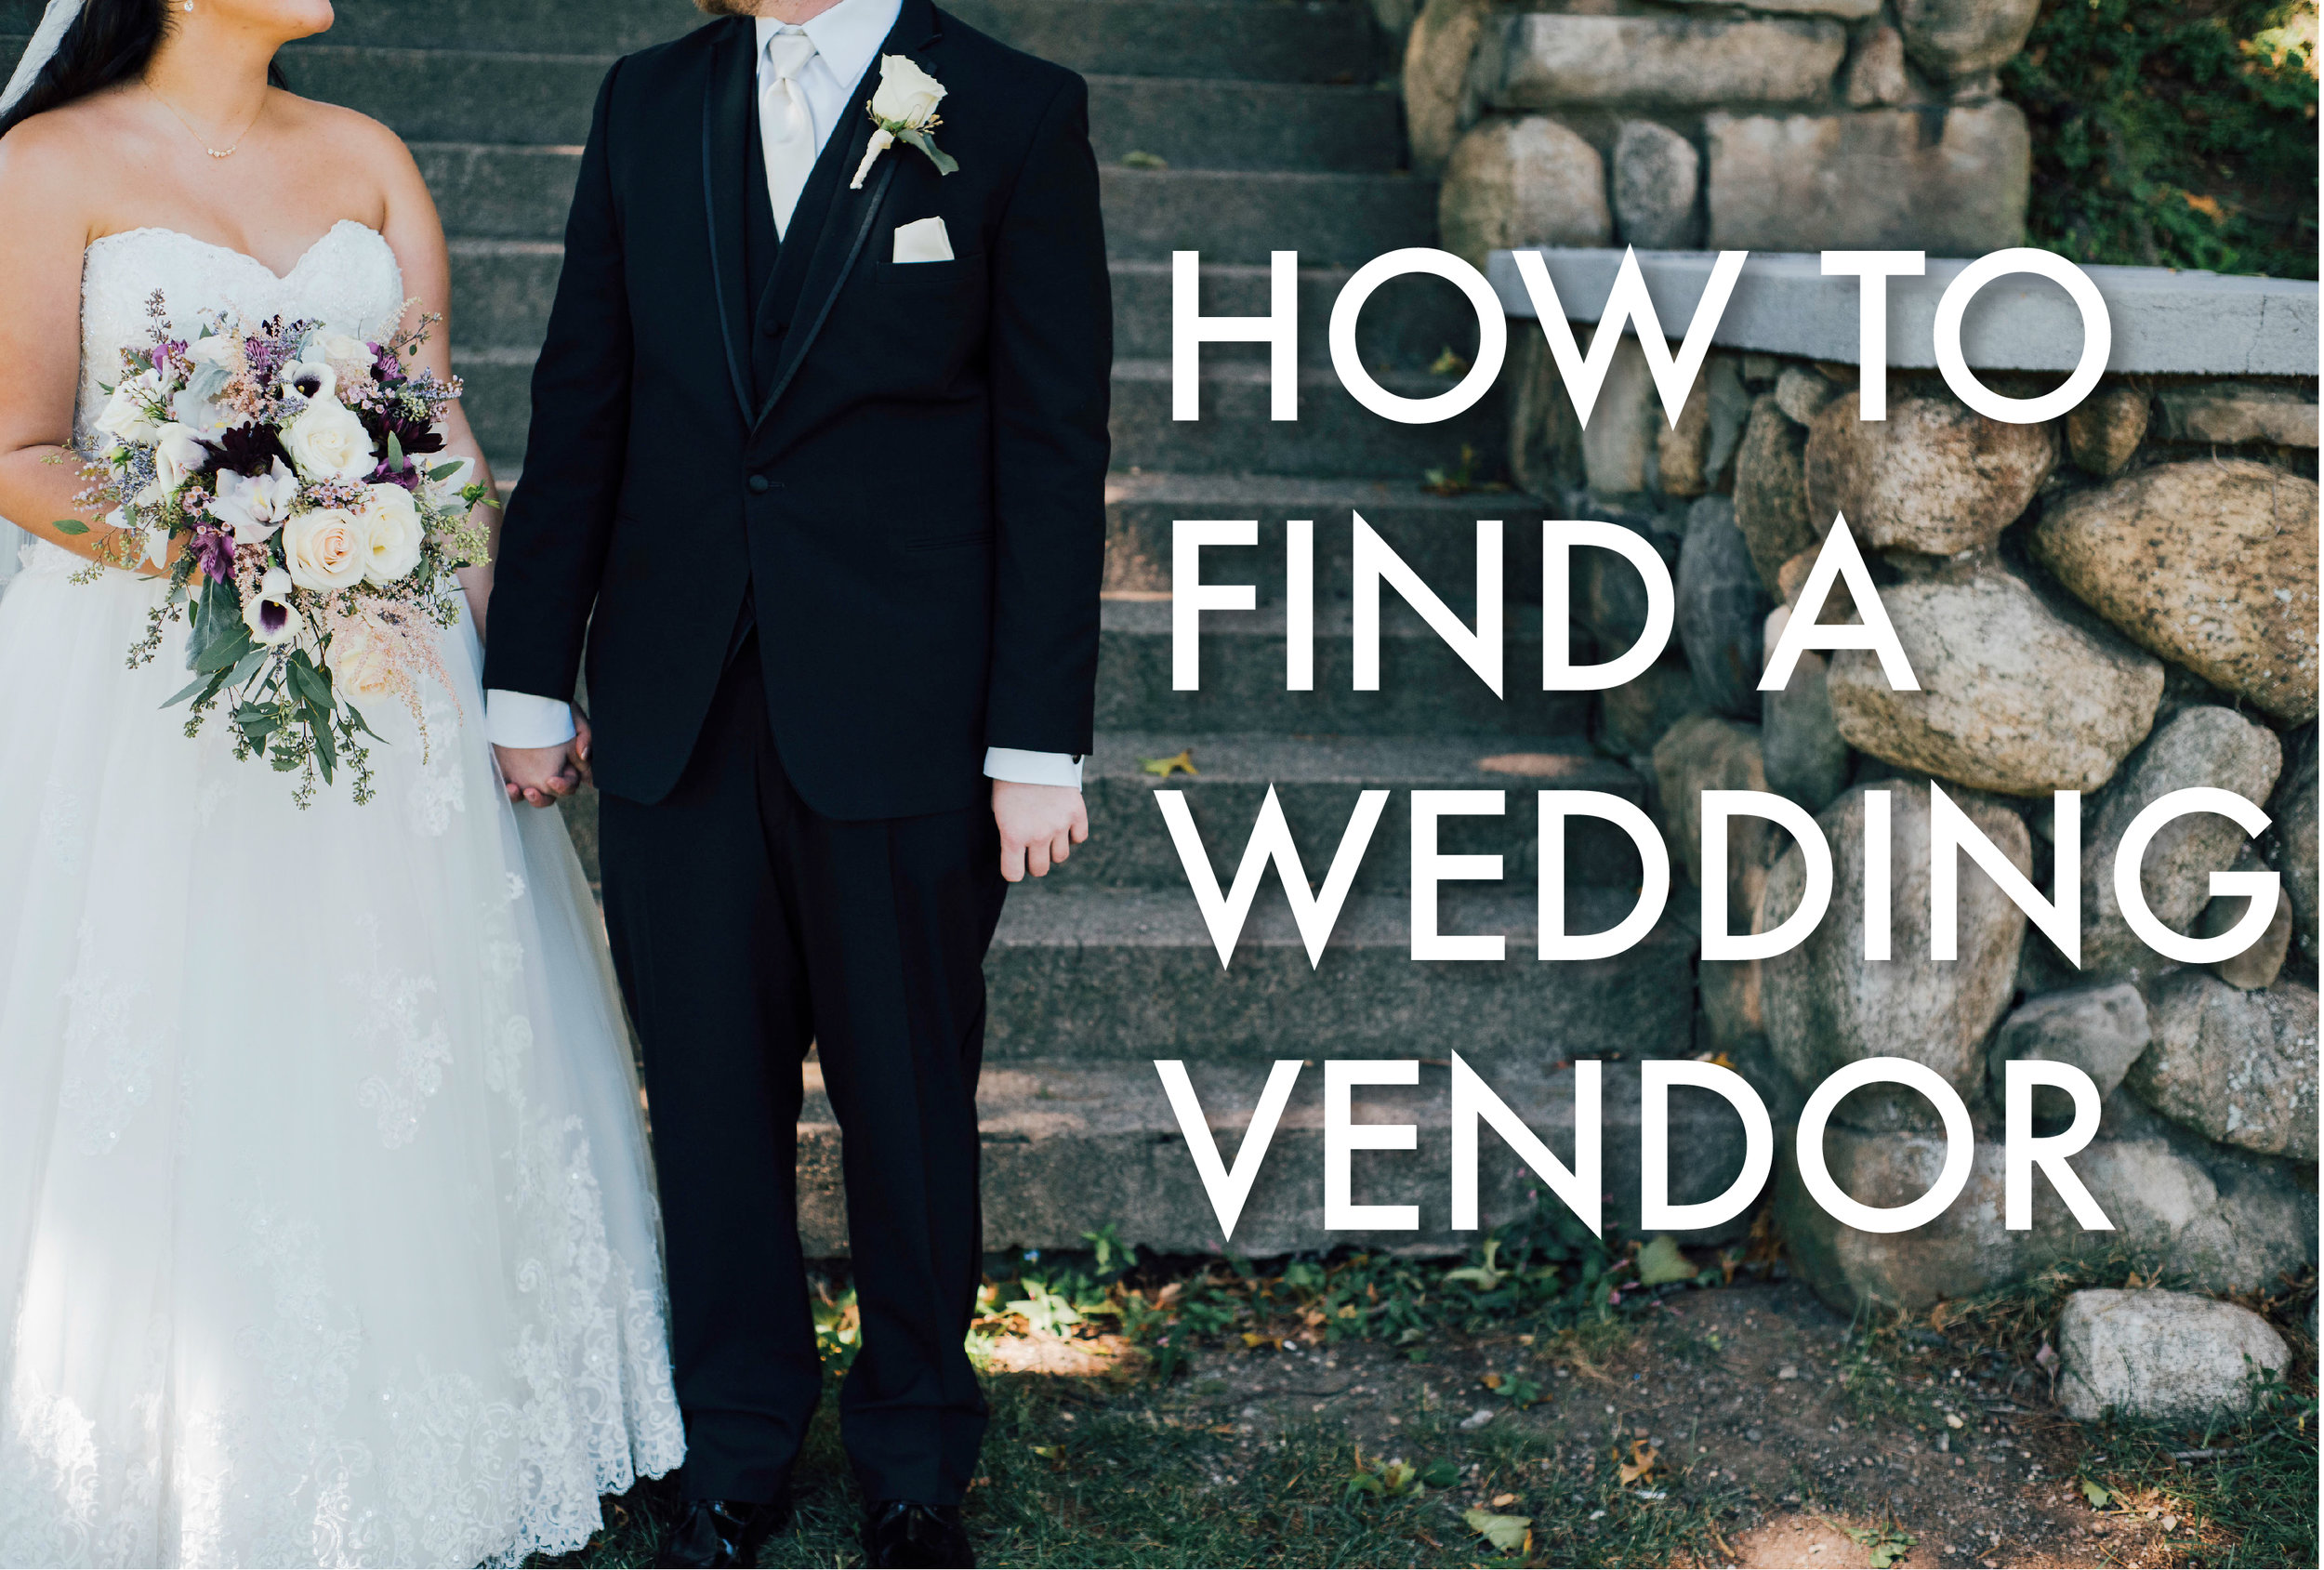 How To Find a wedding vendor